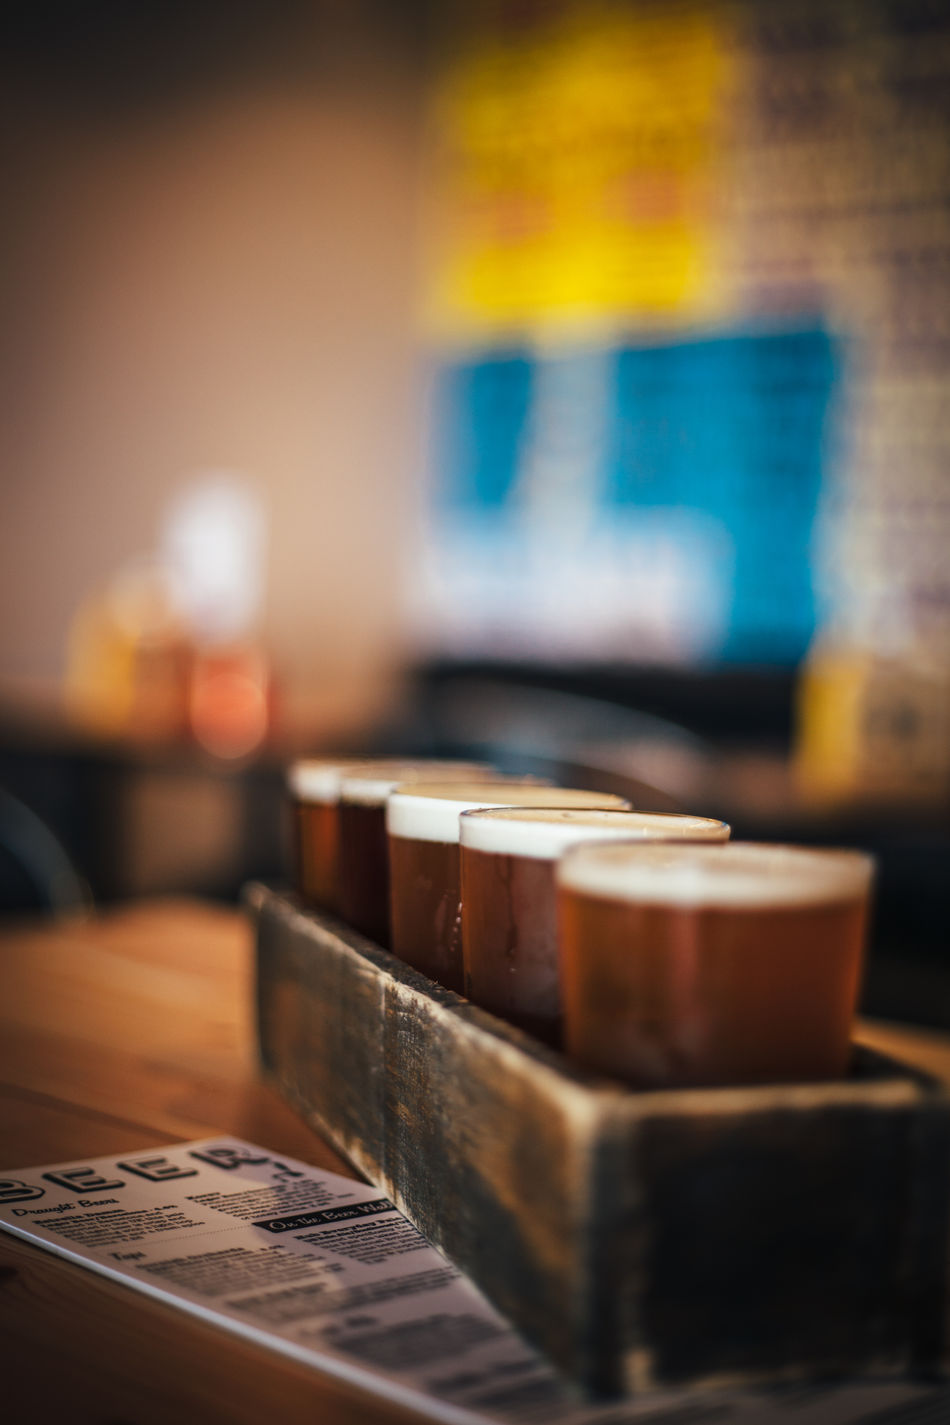 Beautiful stock photos of hunde, Alcohol, Beer - Alcohol, Beer Flight, Beer Glass